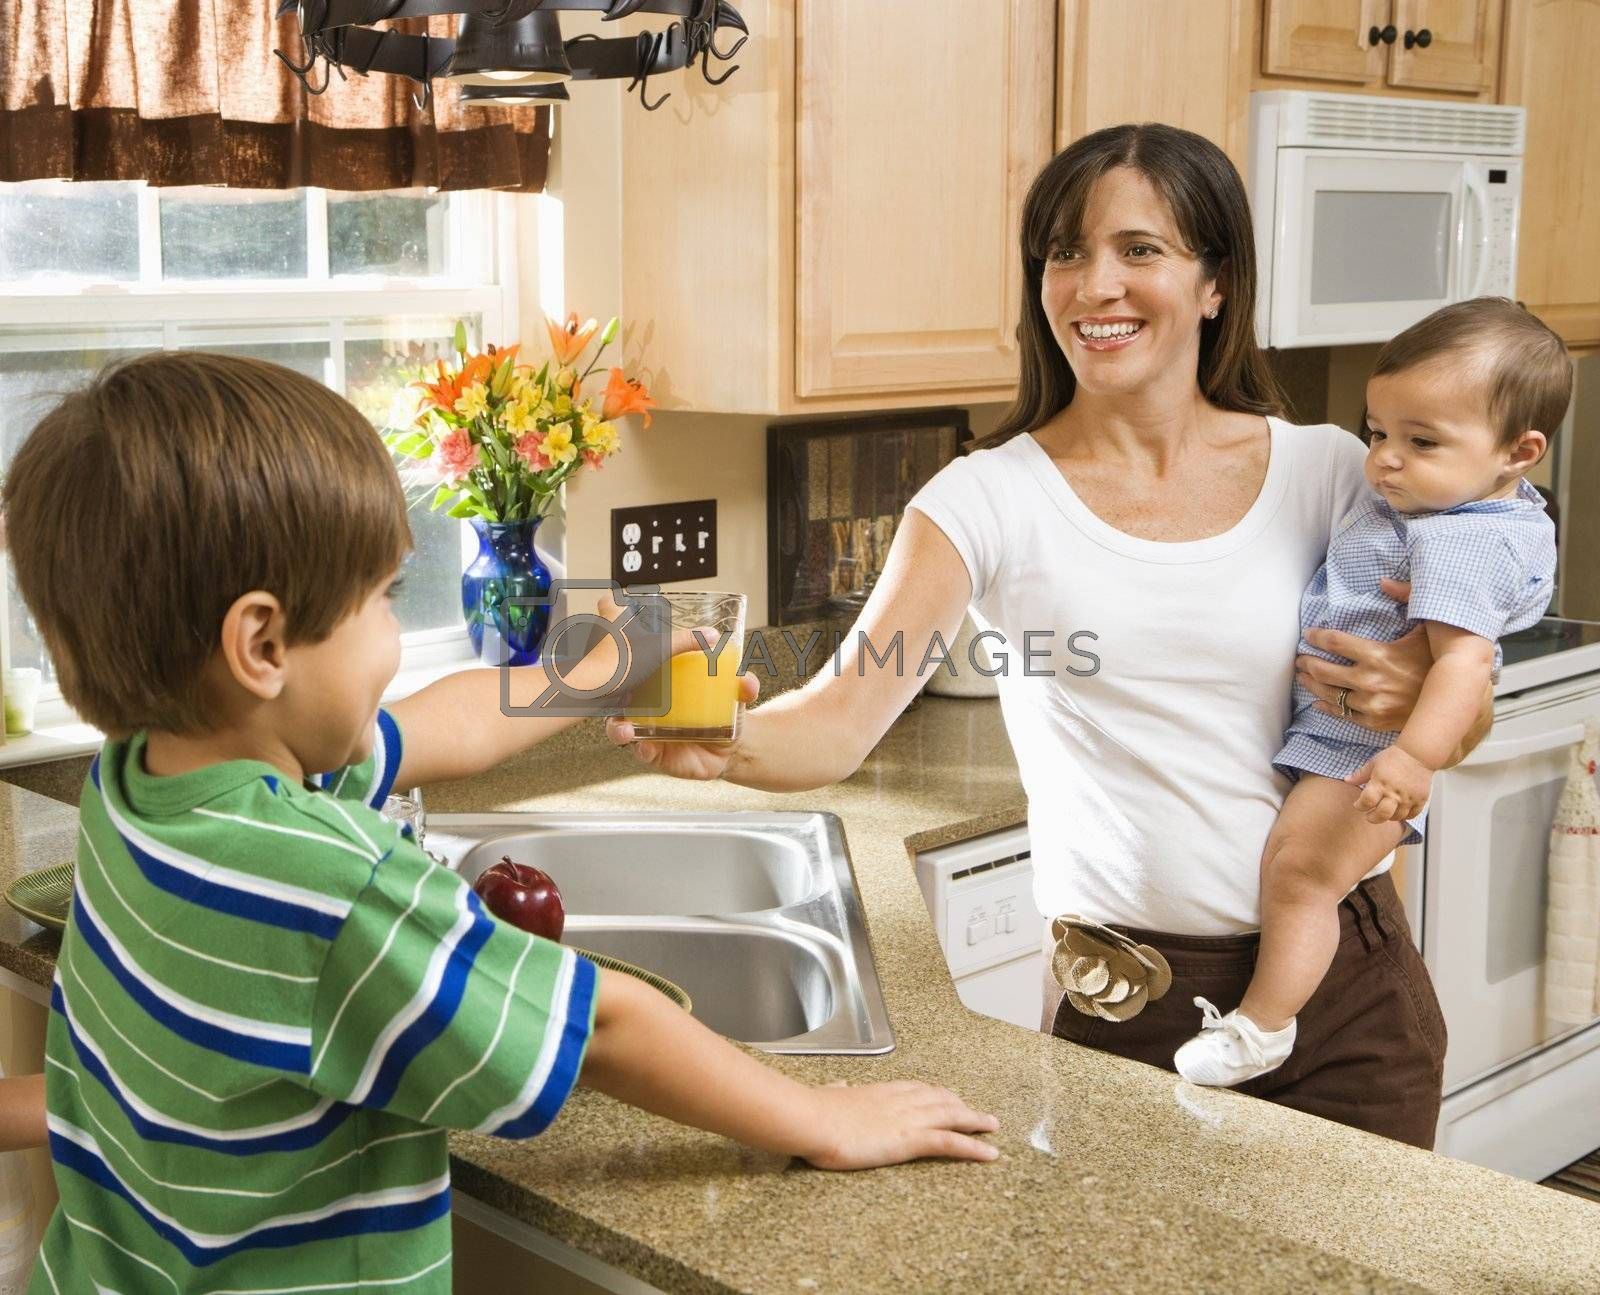 Hispanic mother and children in kitchen with juice.